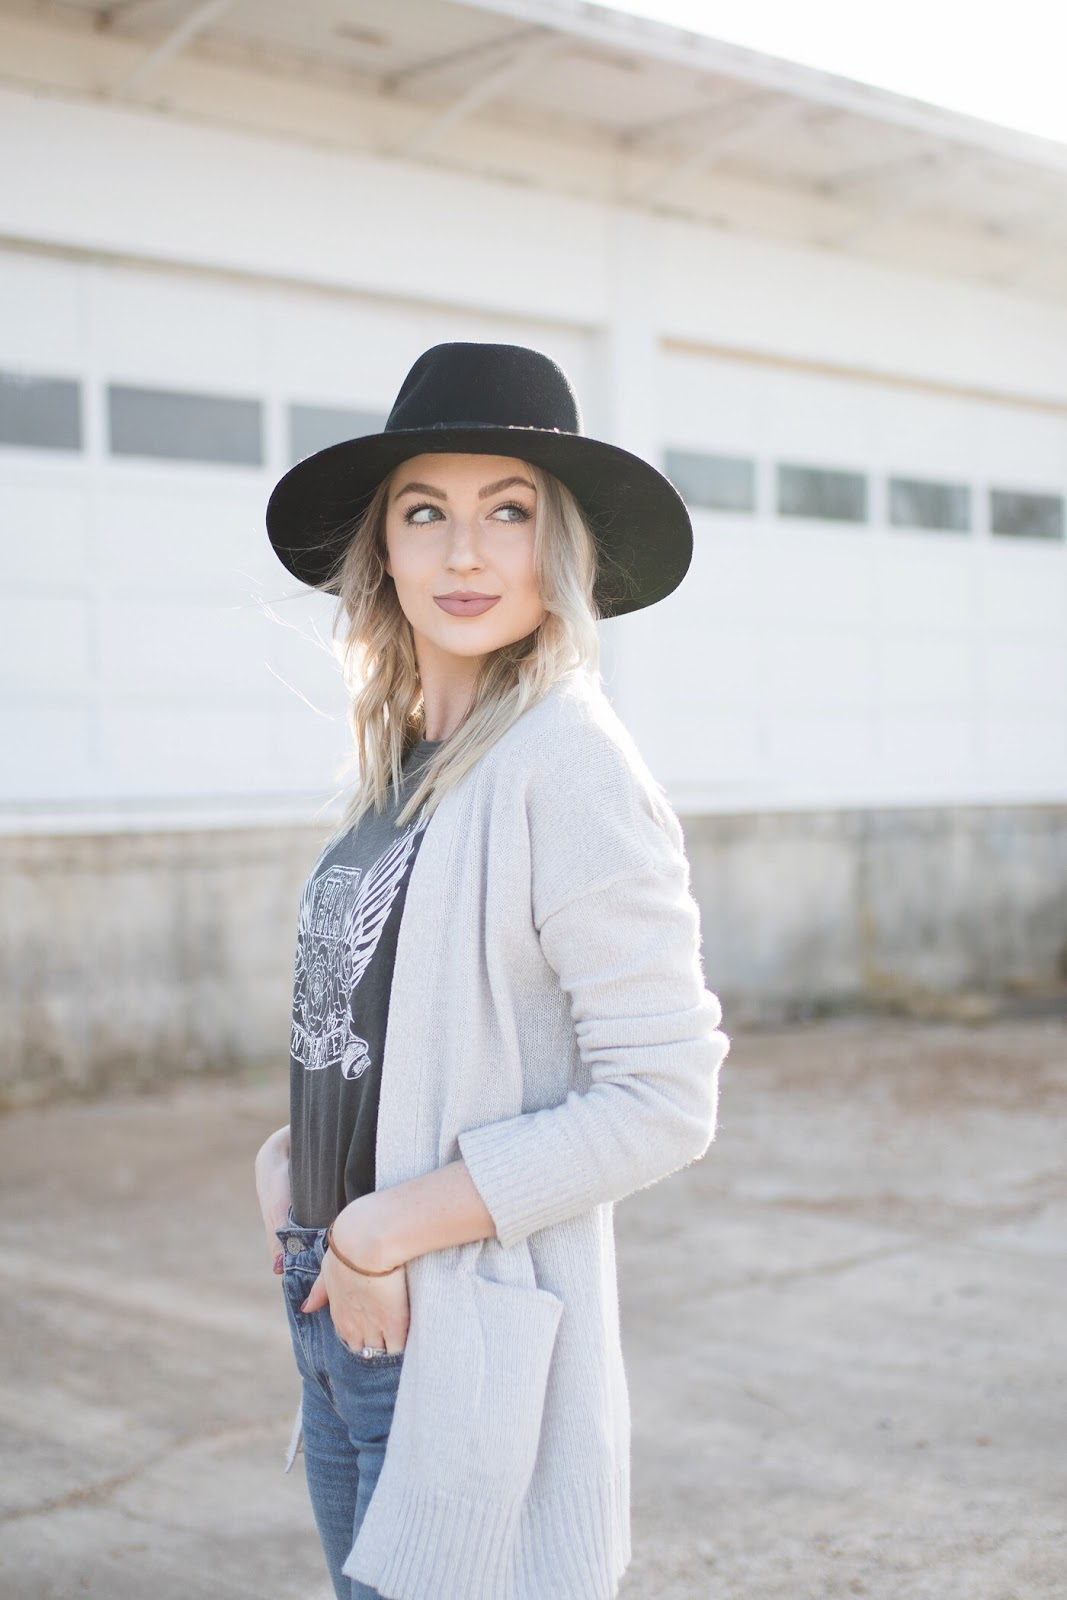 Cardigan, graphic tee, wide brim hat